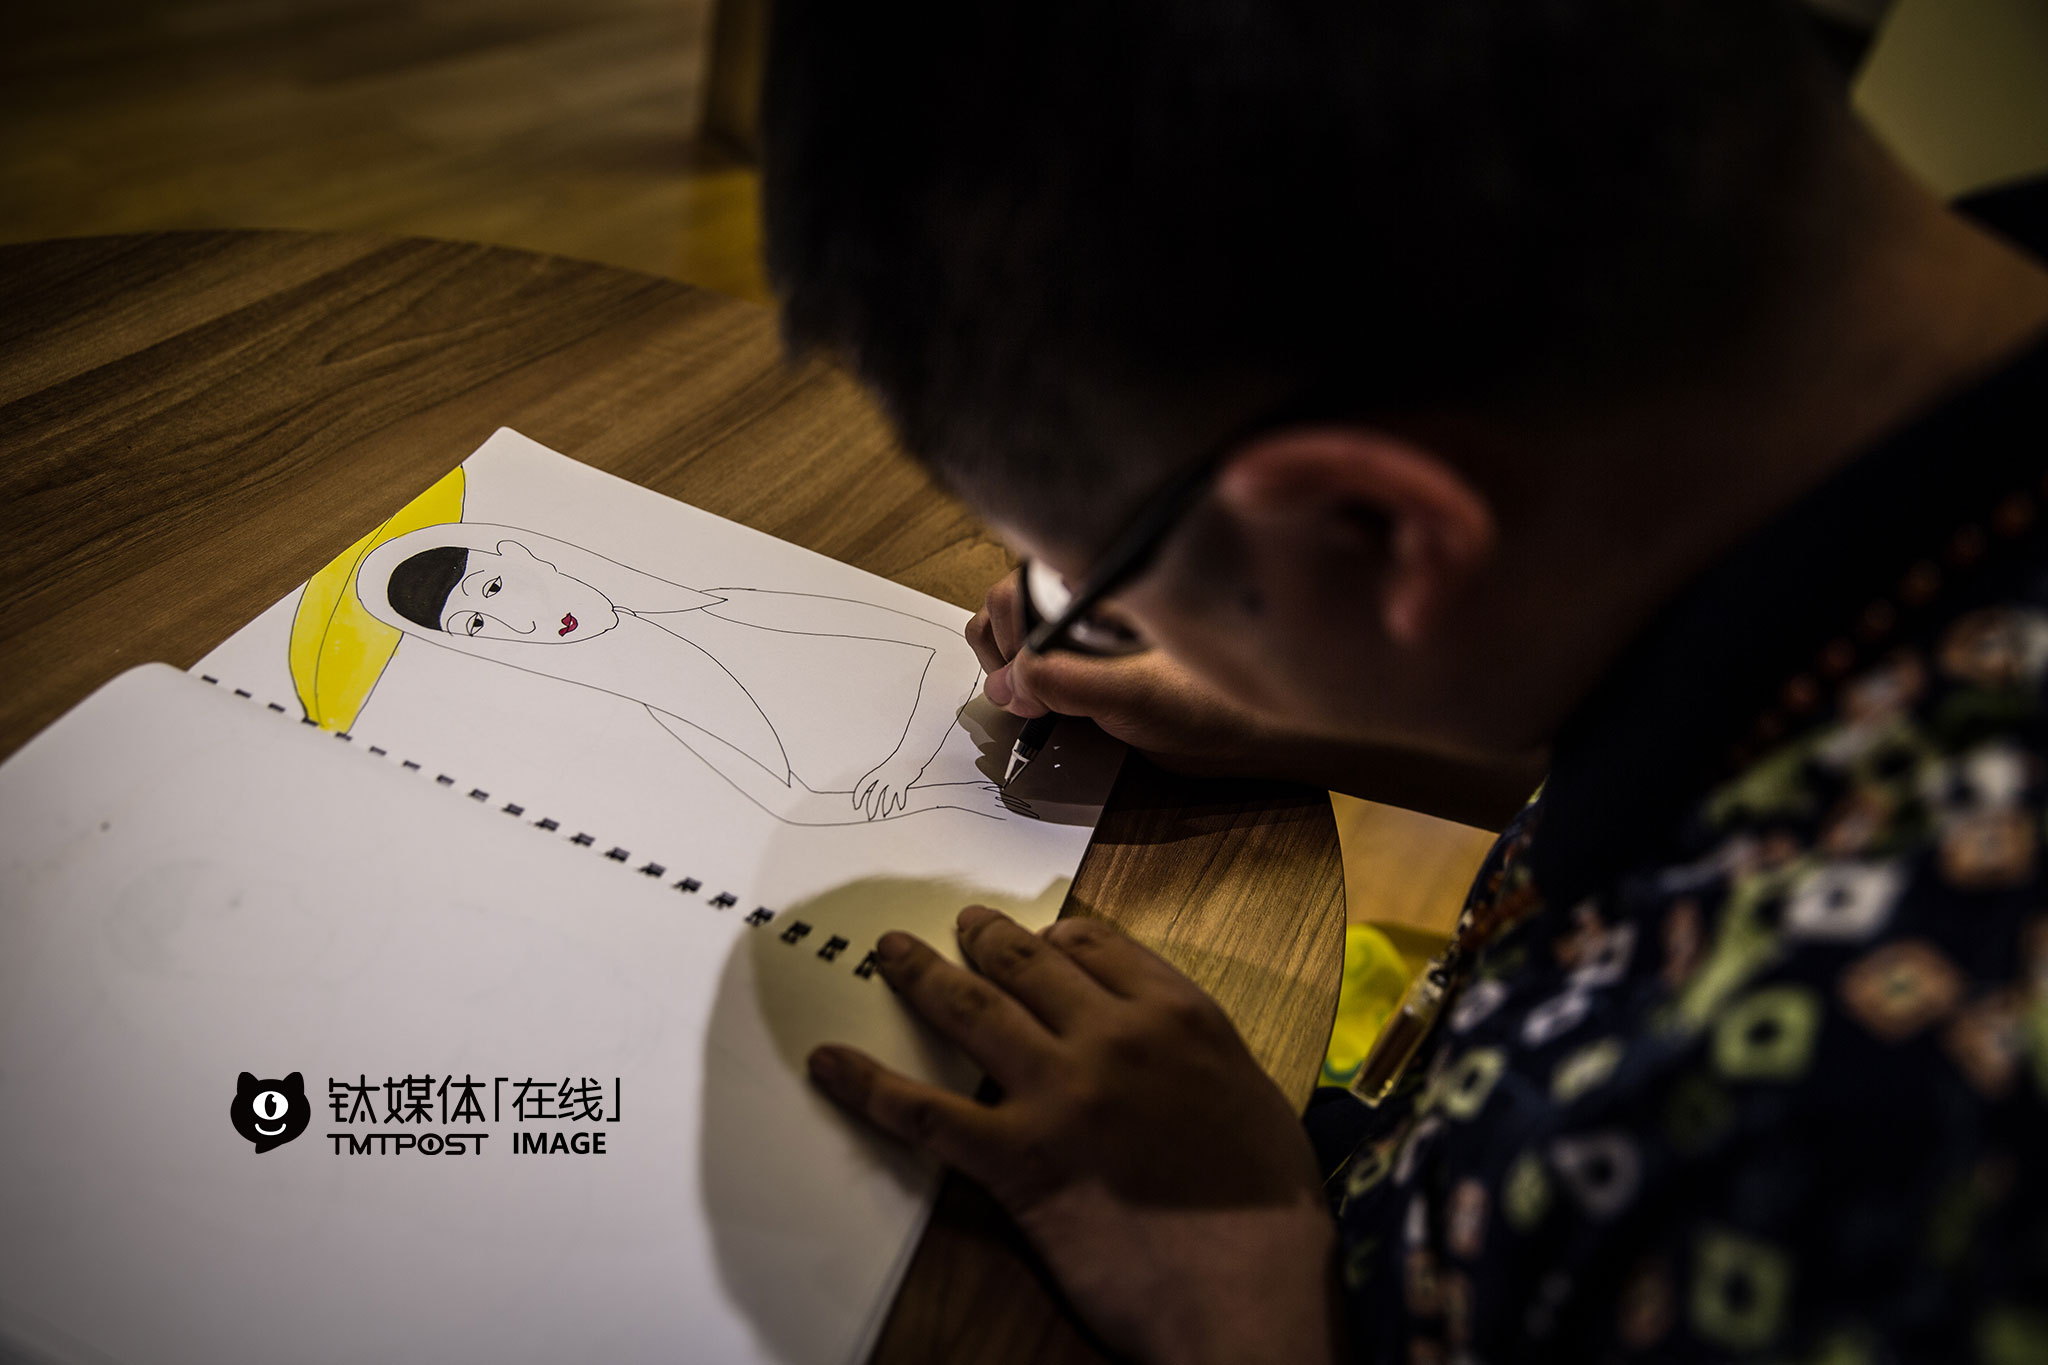 "After the audition, he found a place to resume drawing. Mr. Wu has been painting this picture about Hui'an women for half a year. ""Few people are drawing on such subjects, and I'd like to find some partners to promote ethnic culture together when I almost finished the painting,"" he revealed."